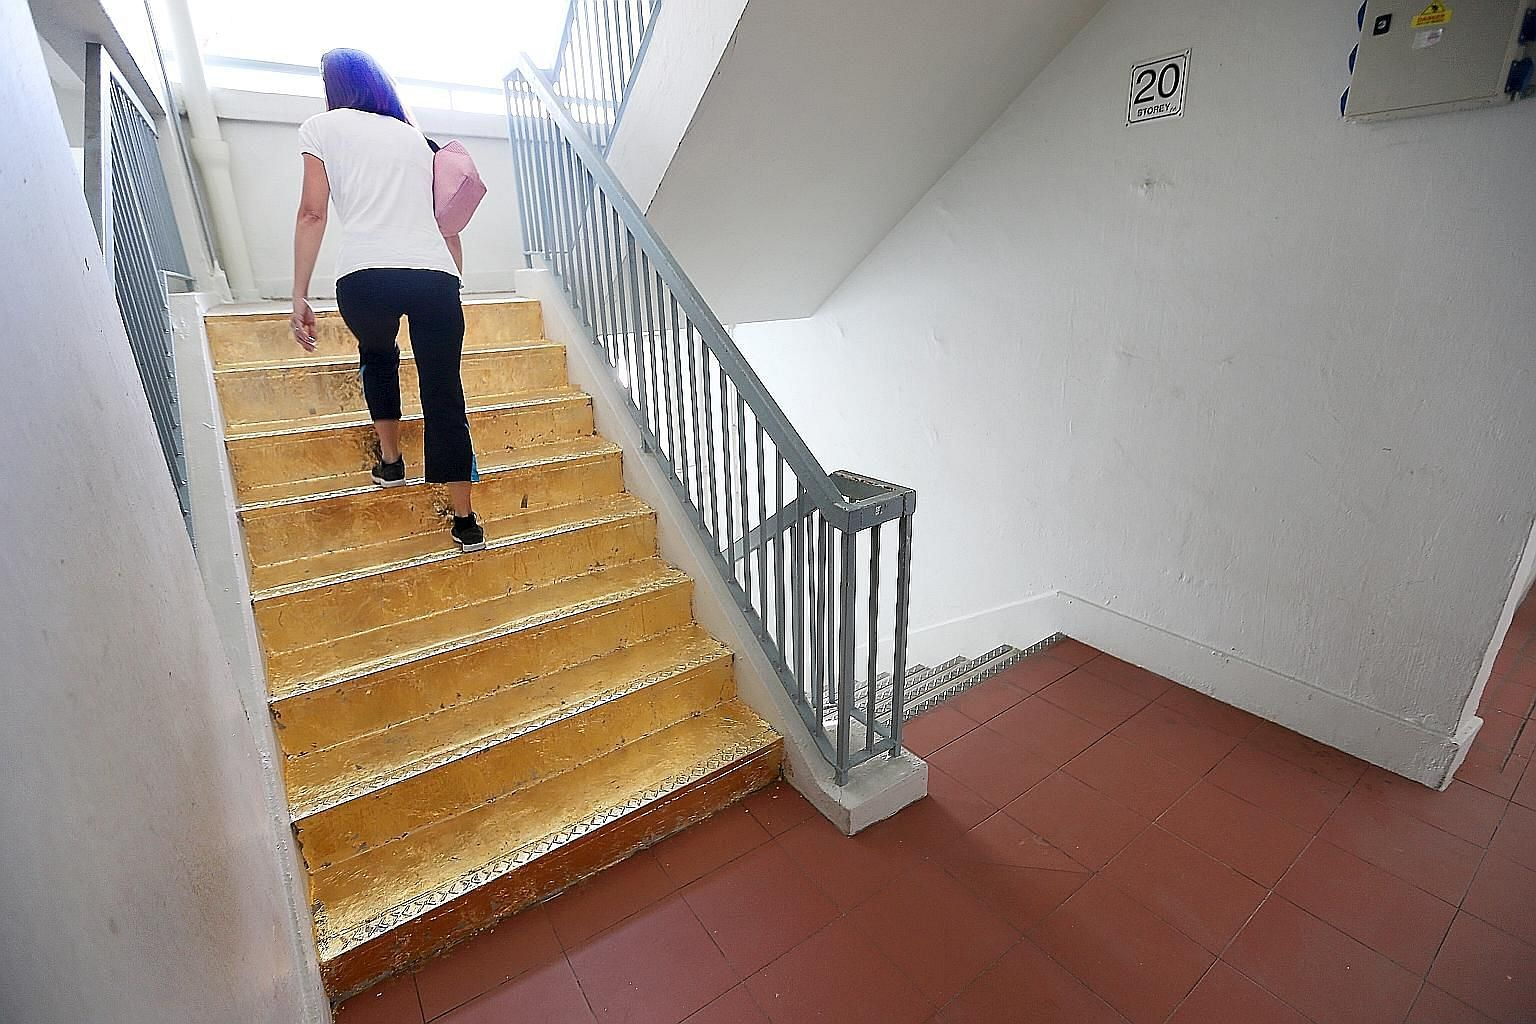 After pictures of it went online on Monday, the flight of stairs covered with gold foil in a Jalan Rajah block spurred debate in the House yesterday.